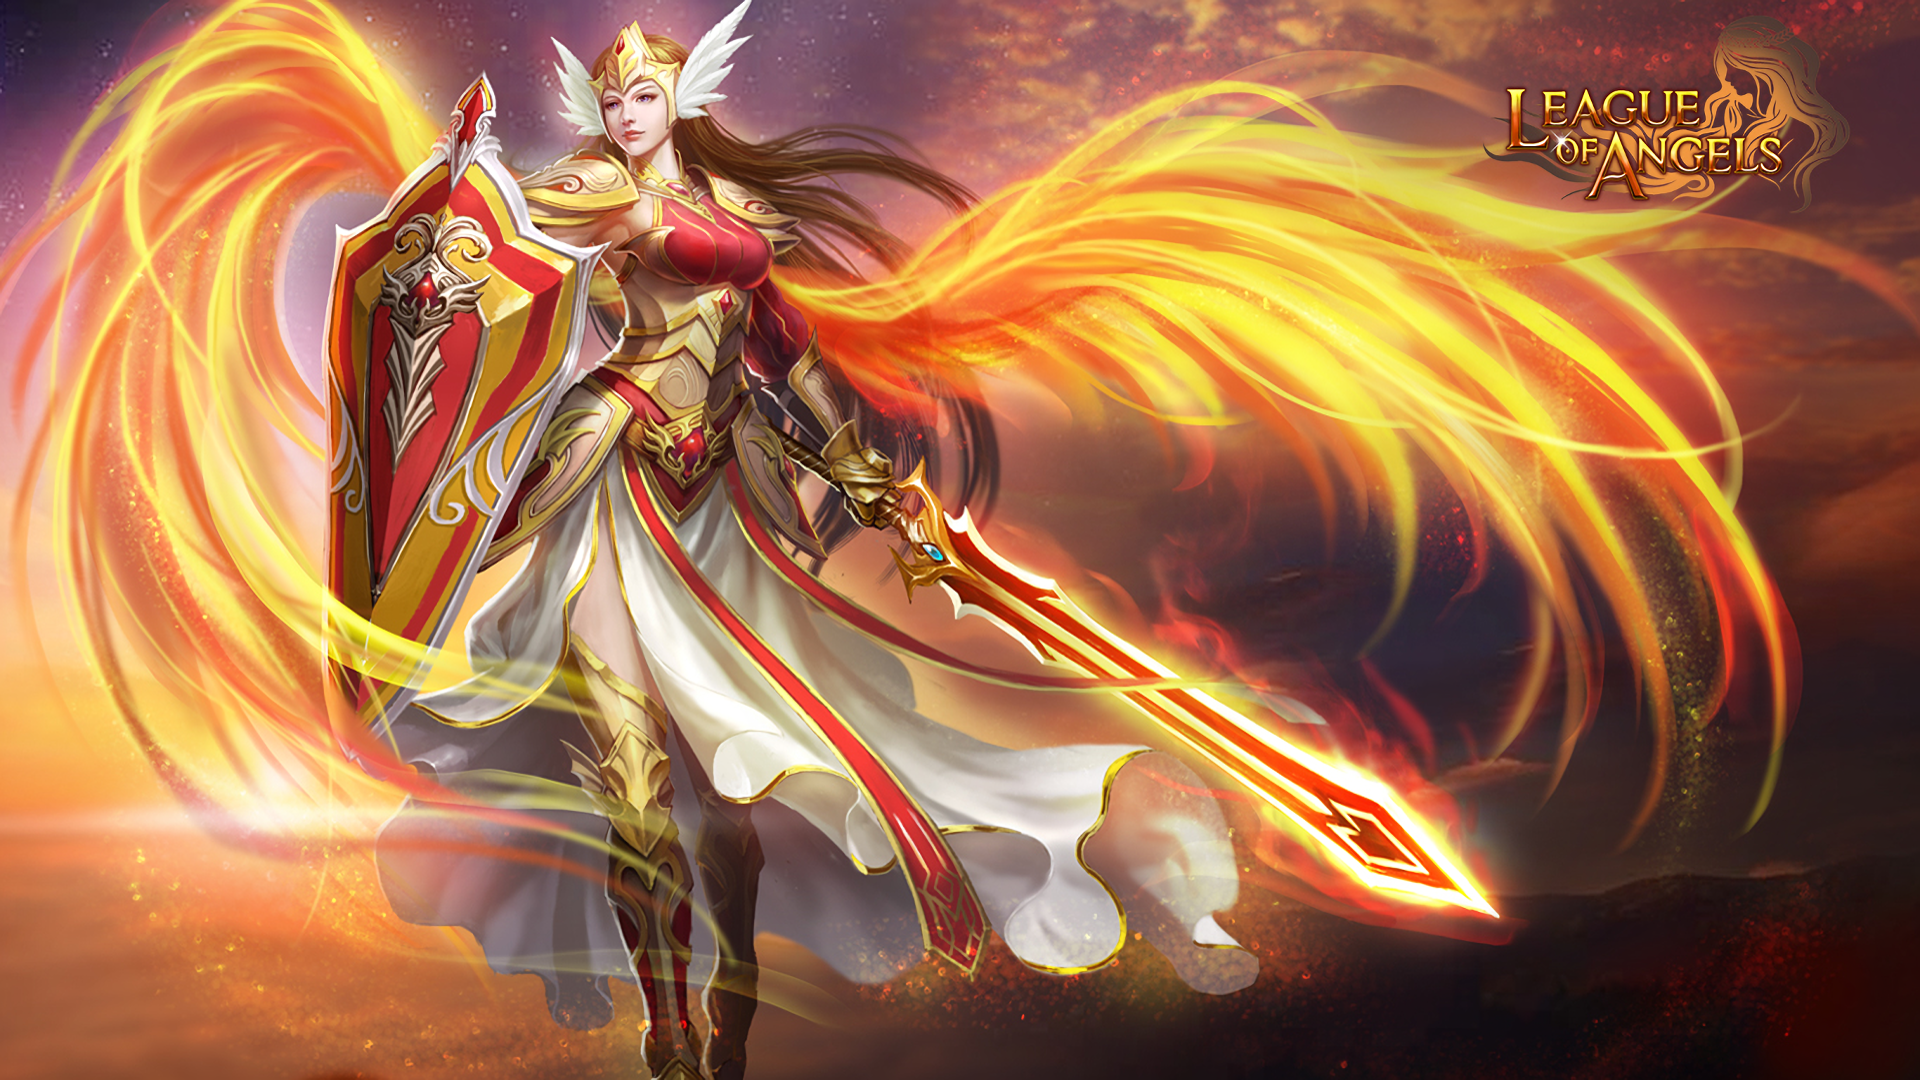 12 League Of Angels HD Wallpapers